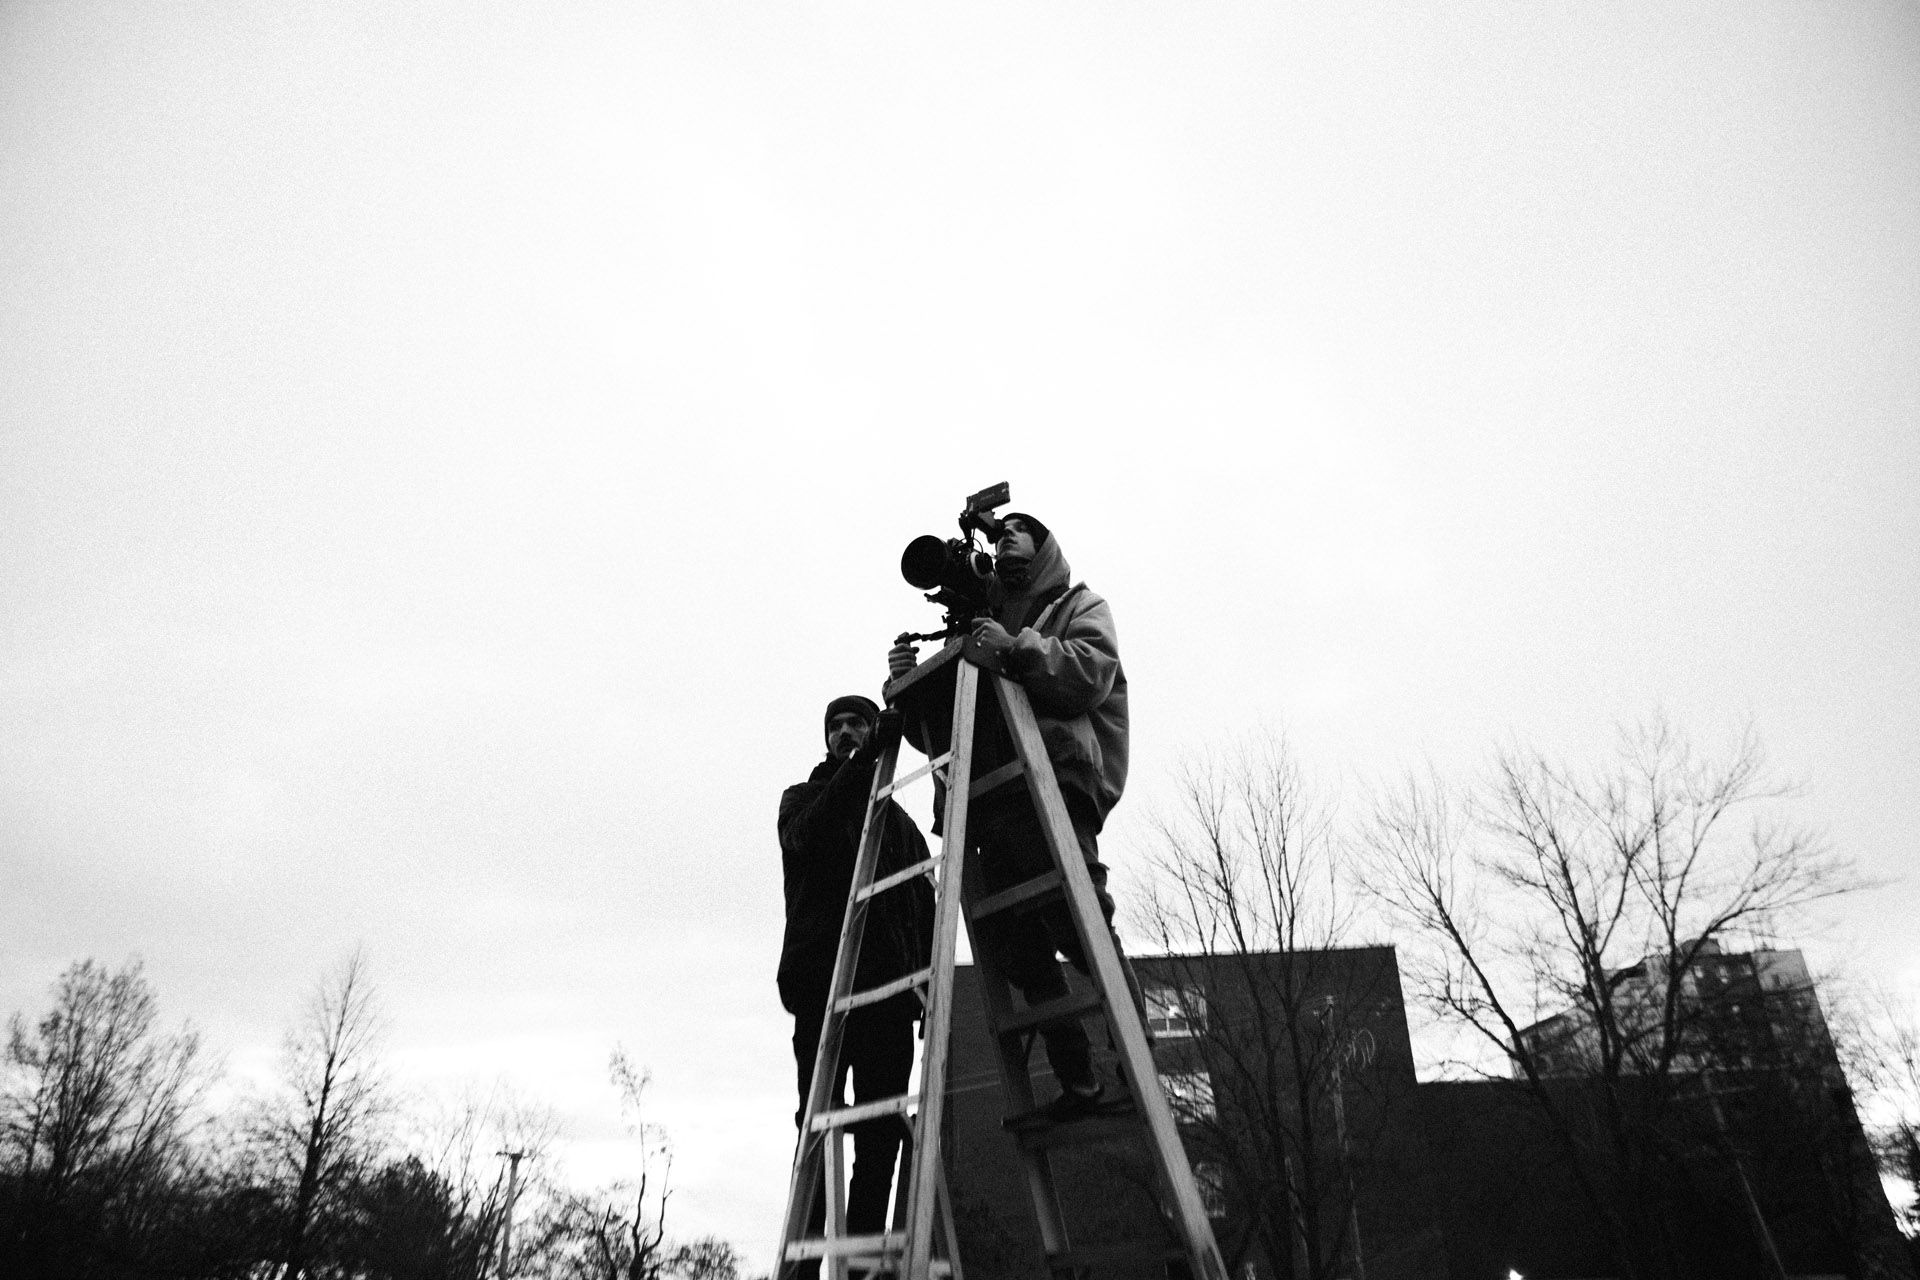 Vincent Ruel-Cote from Les Gamins up on a ladder with camera assistant to film a top view in behind the scenes filming TV series La Loi C'est La Loi at night with TV5 Unis